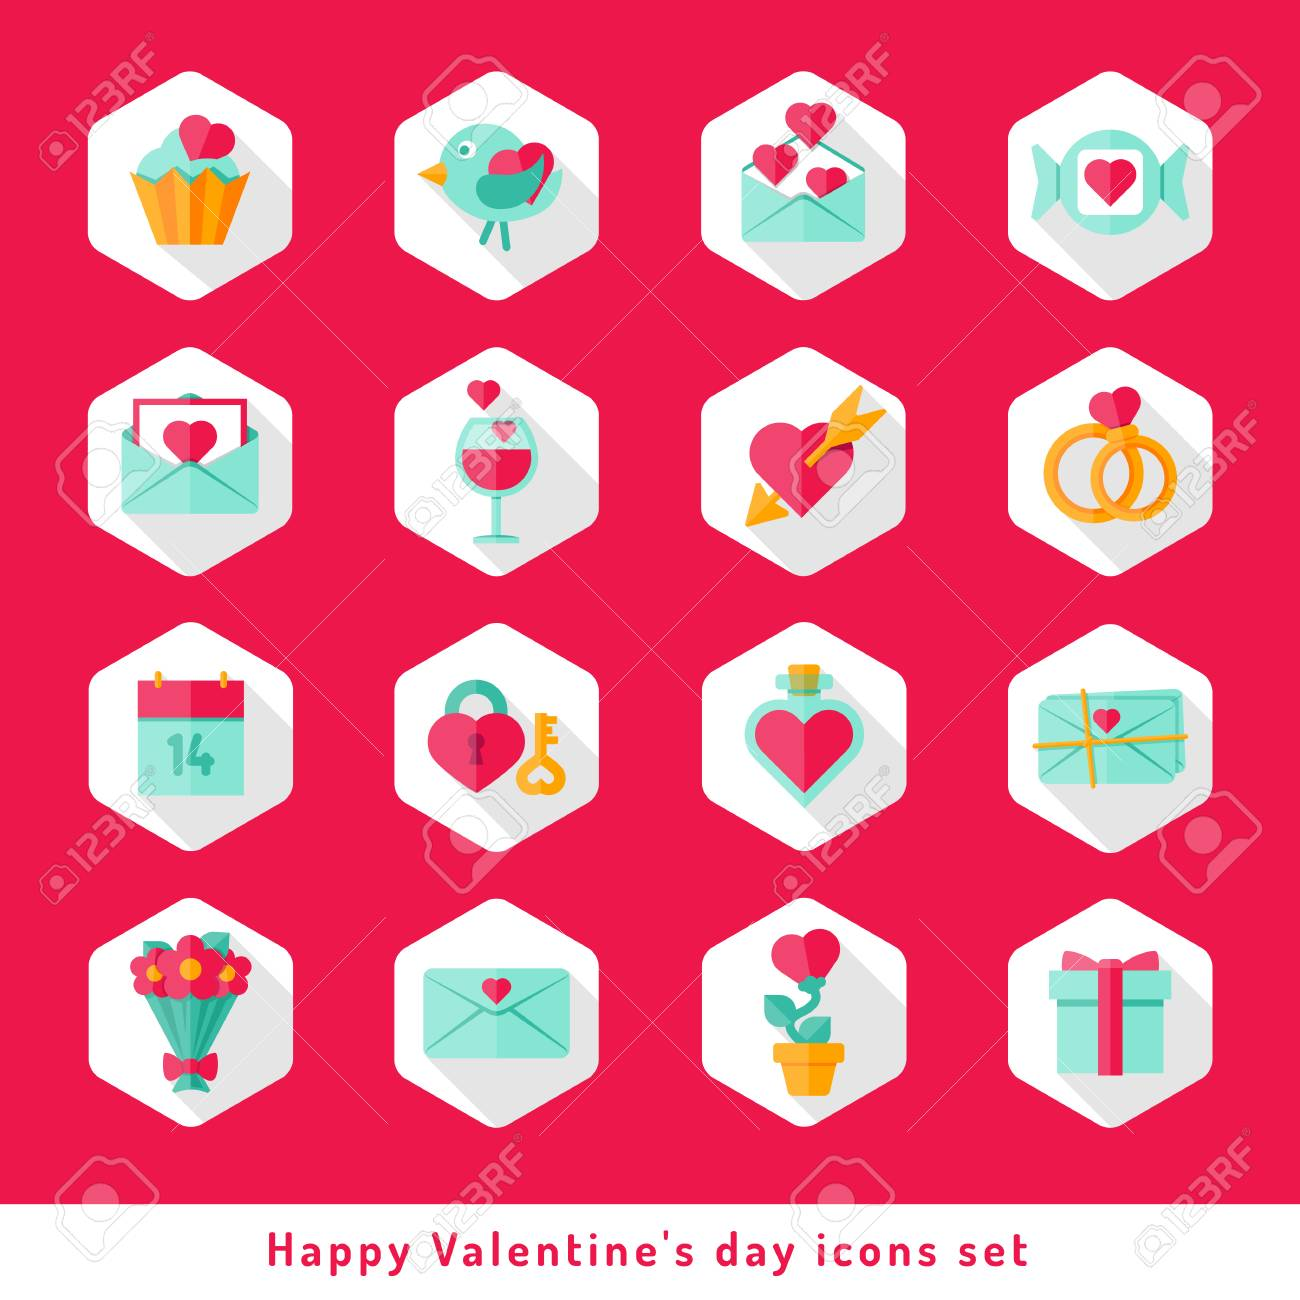 Happy Valentine Day Icons Set In Flat Minimalistic Style Royalty